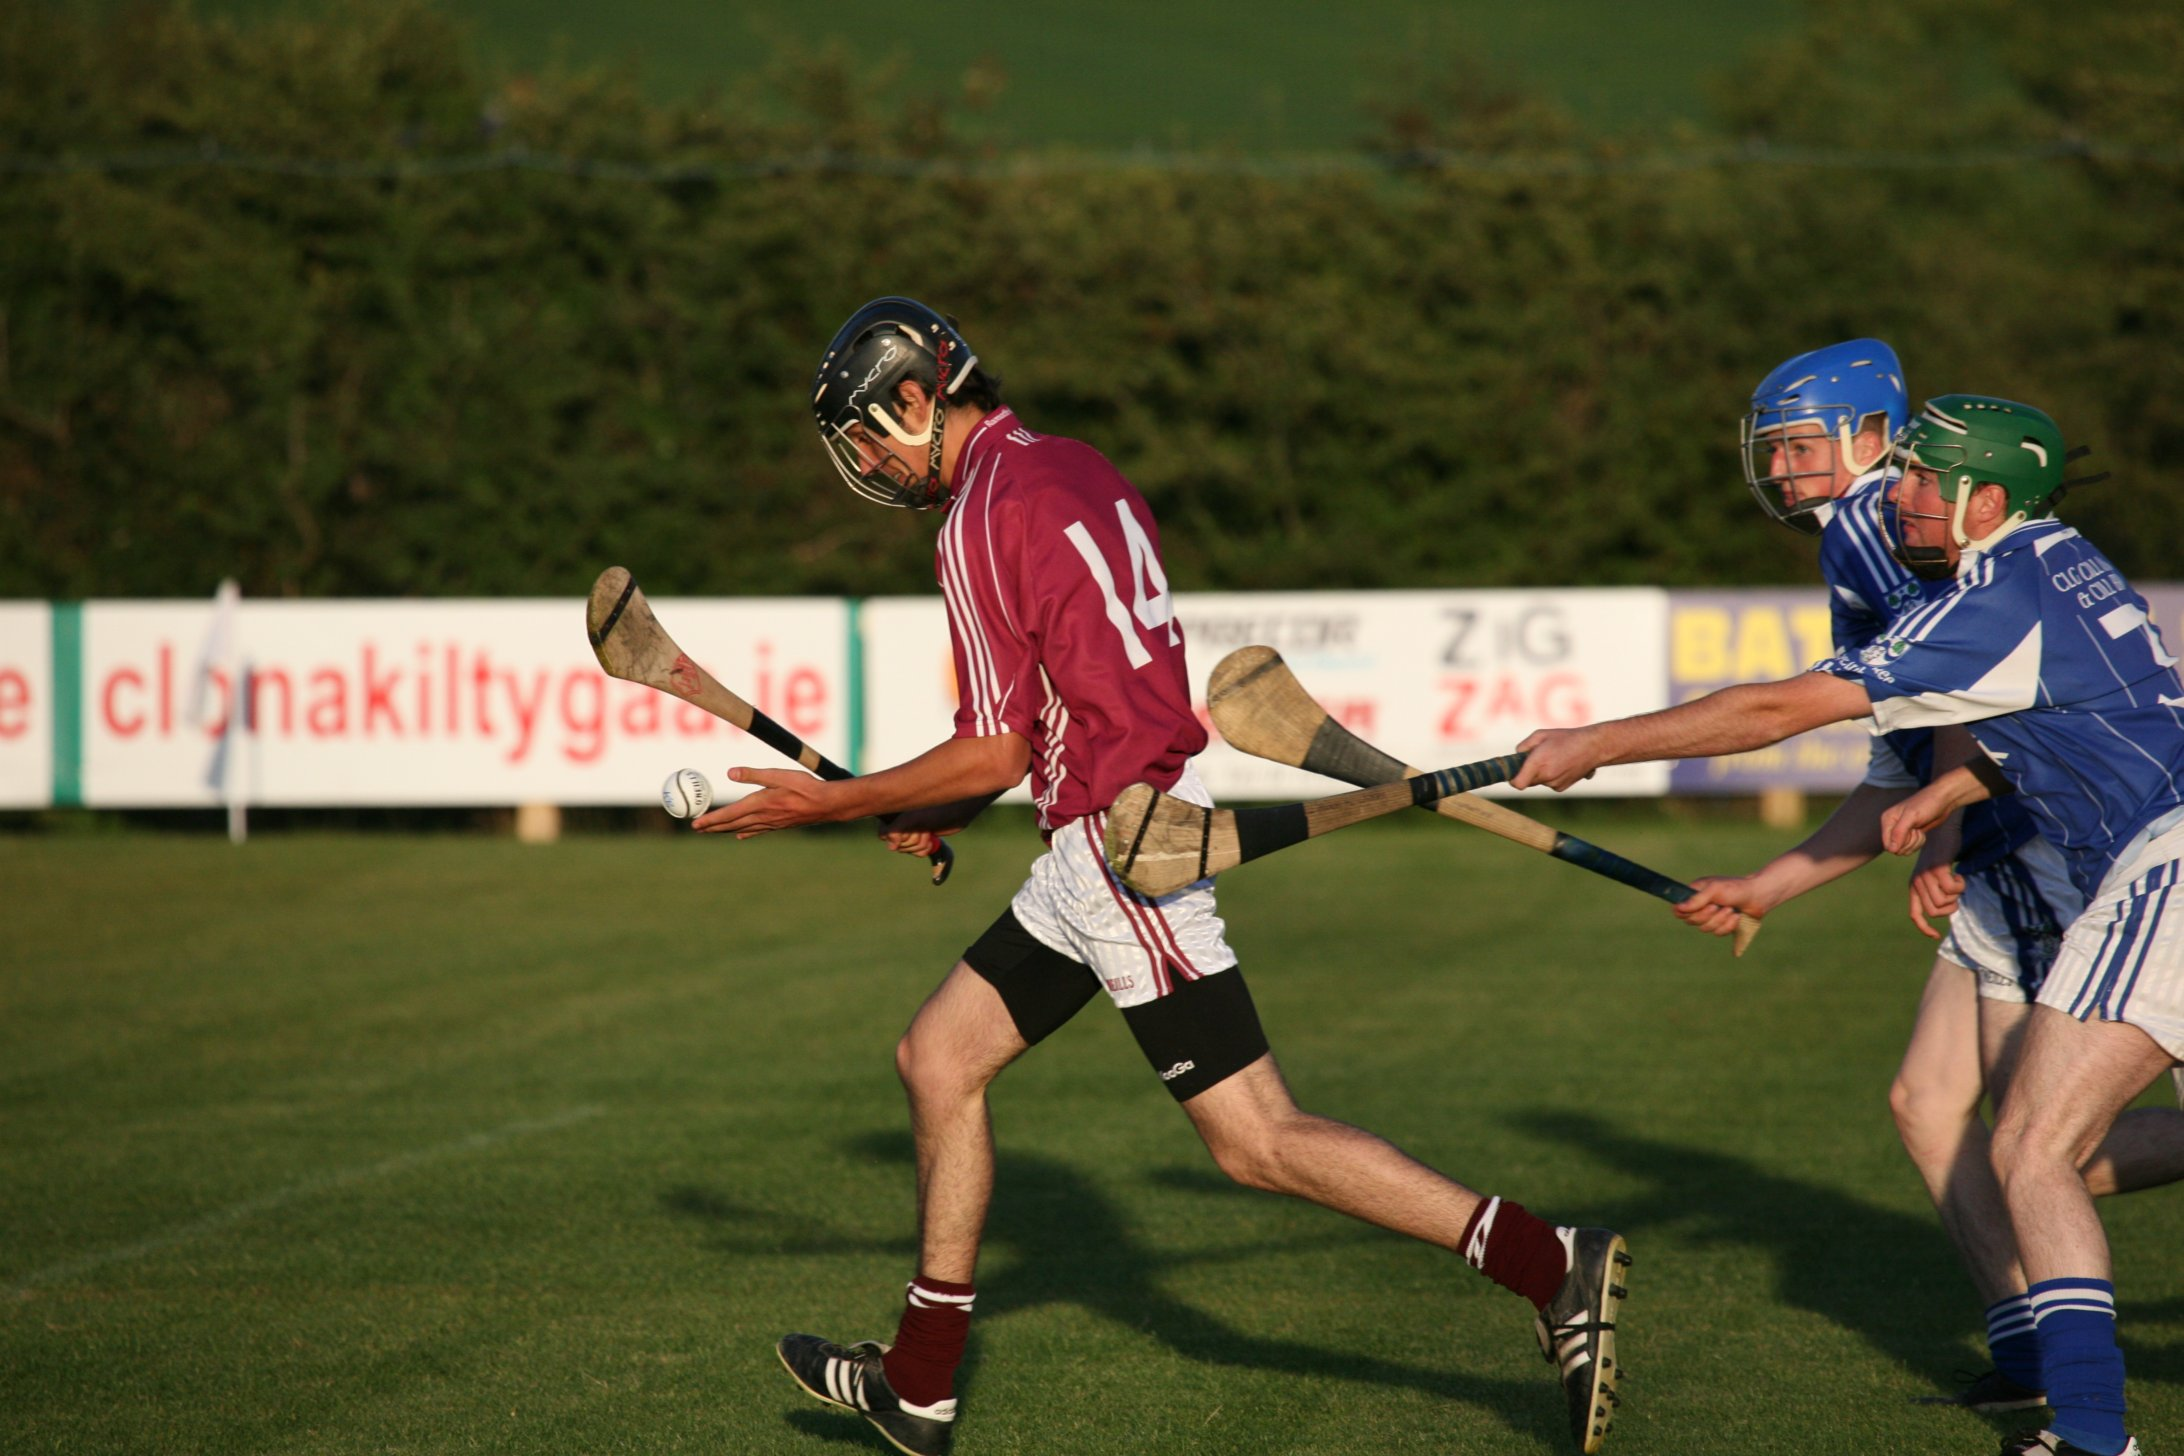 Irish national sport: Hurling!